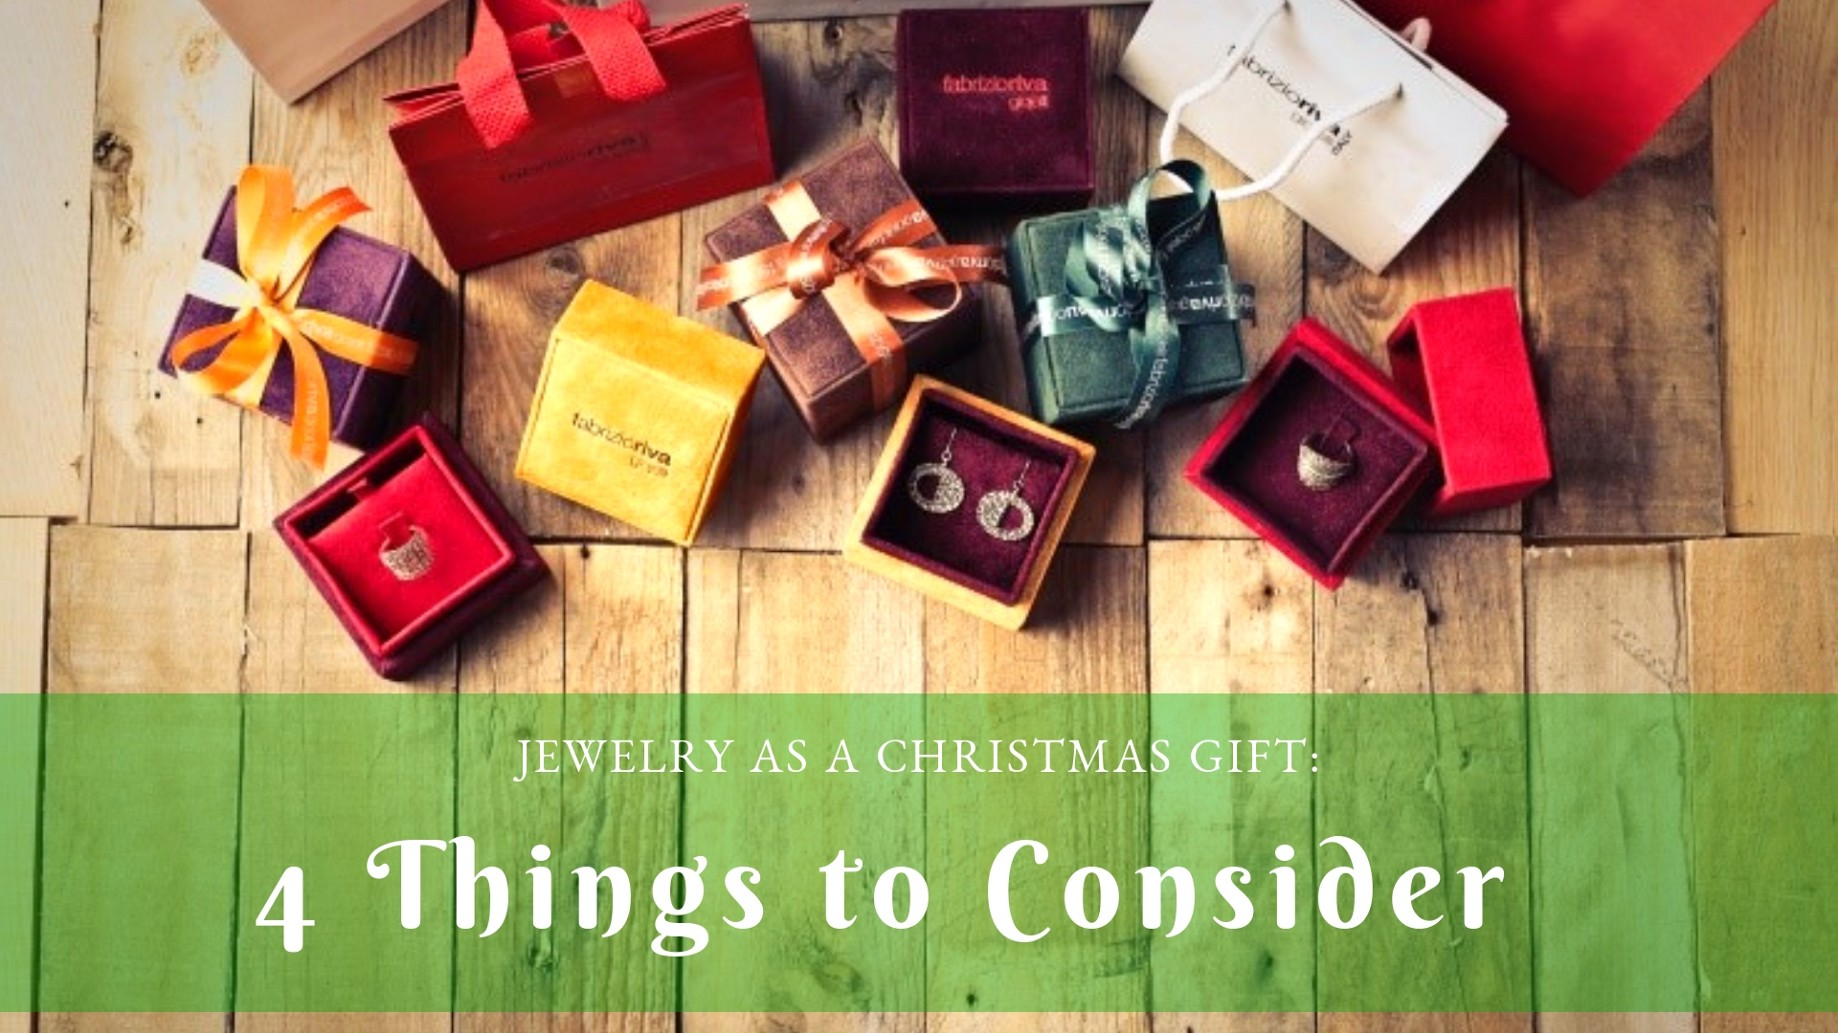 4 Things For Christmas.Jewelry As A Christmas Gift 4 Things To Consider Martin